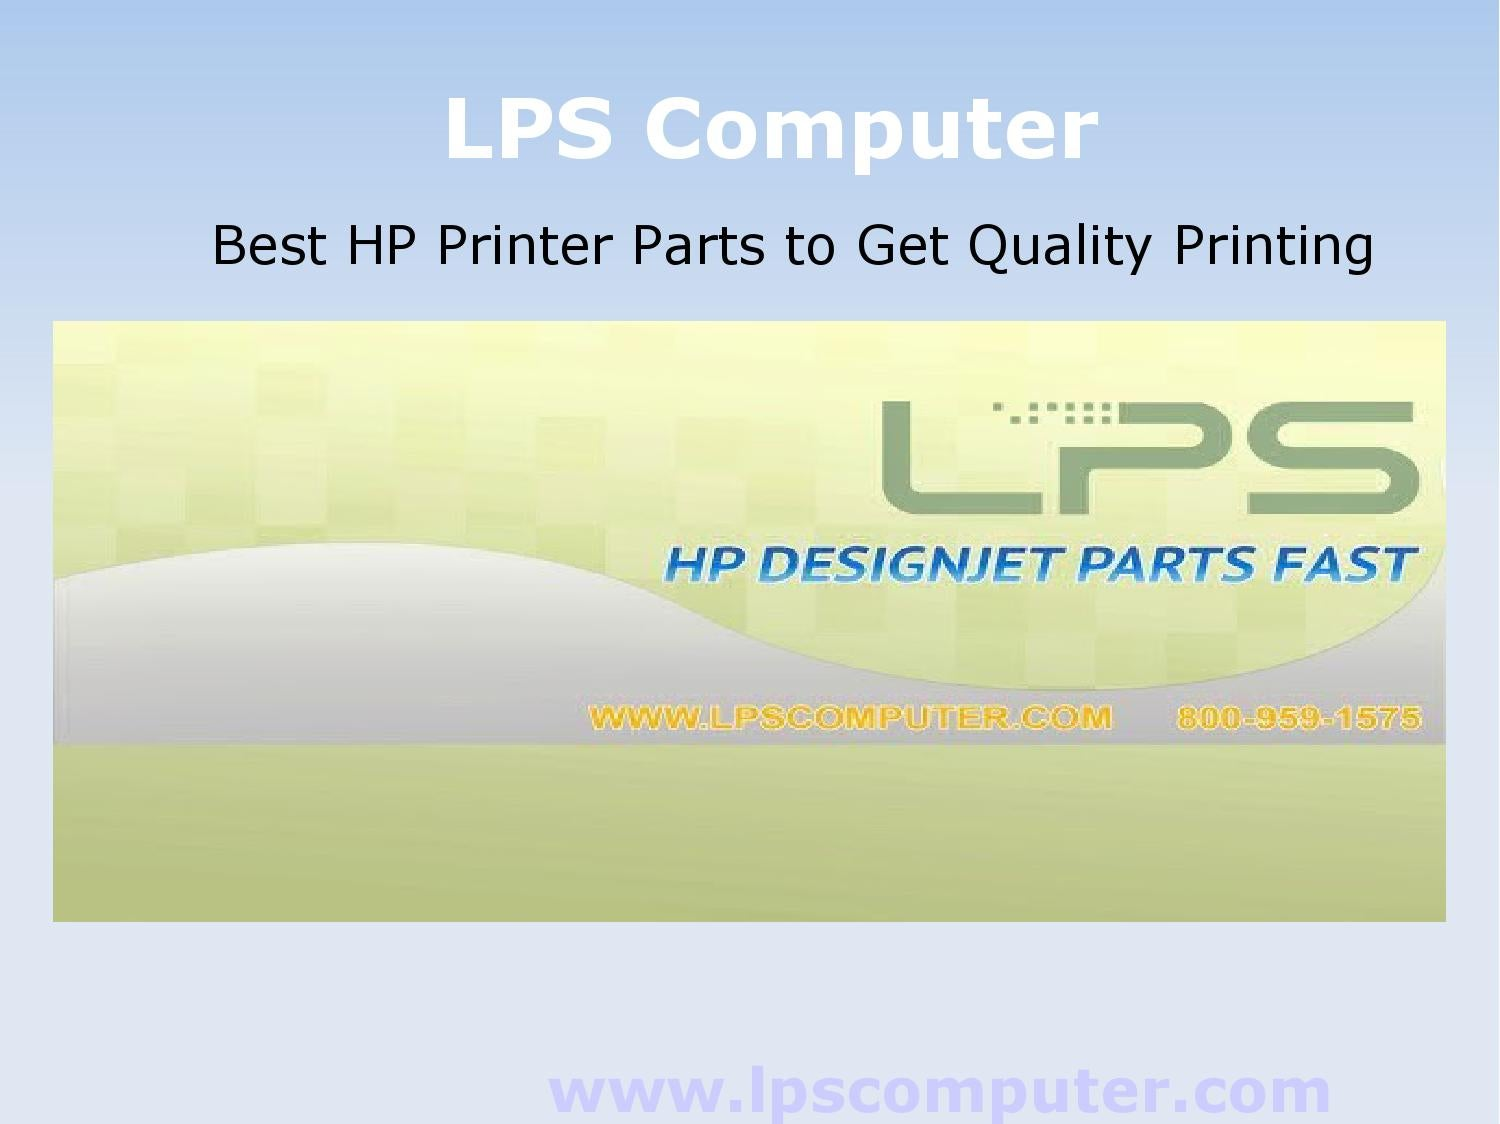 Get Best Quality & Cheapest Price Hp Designjet 800 Parts by